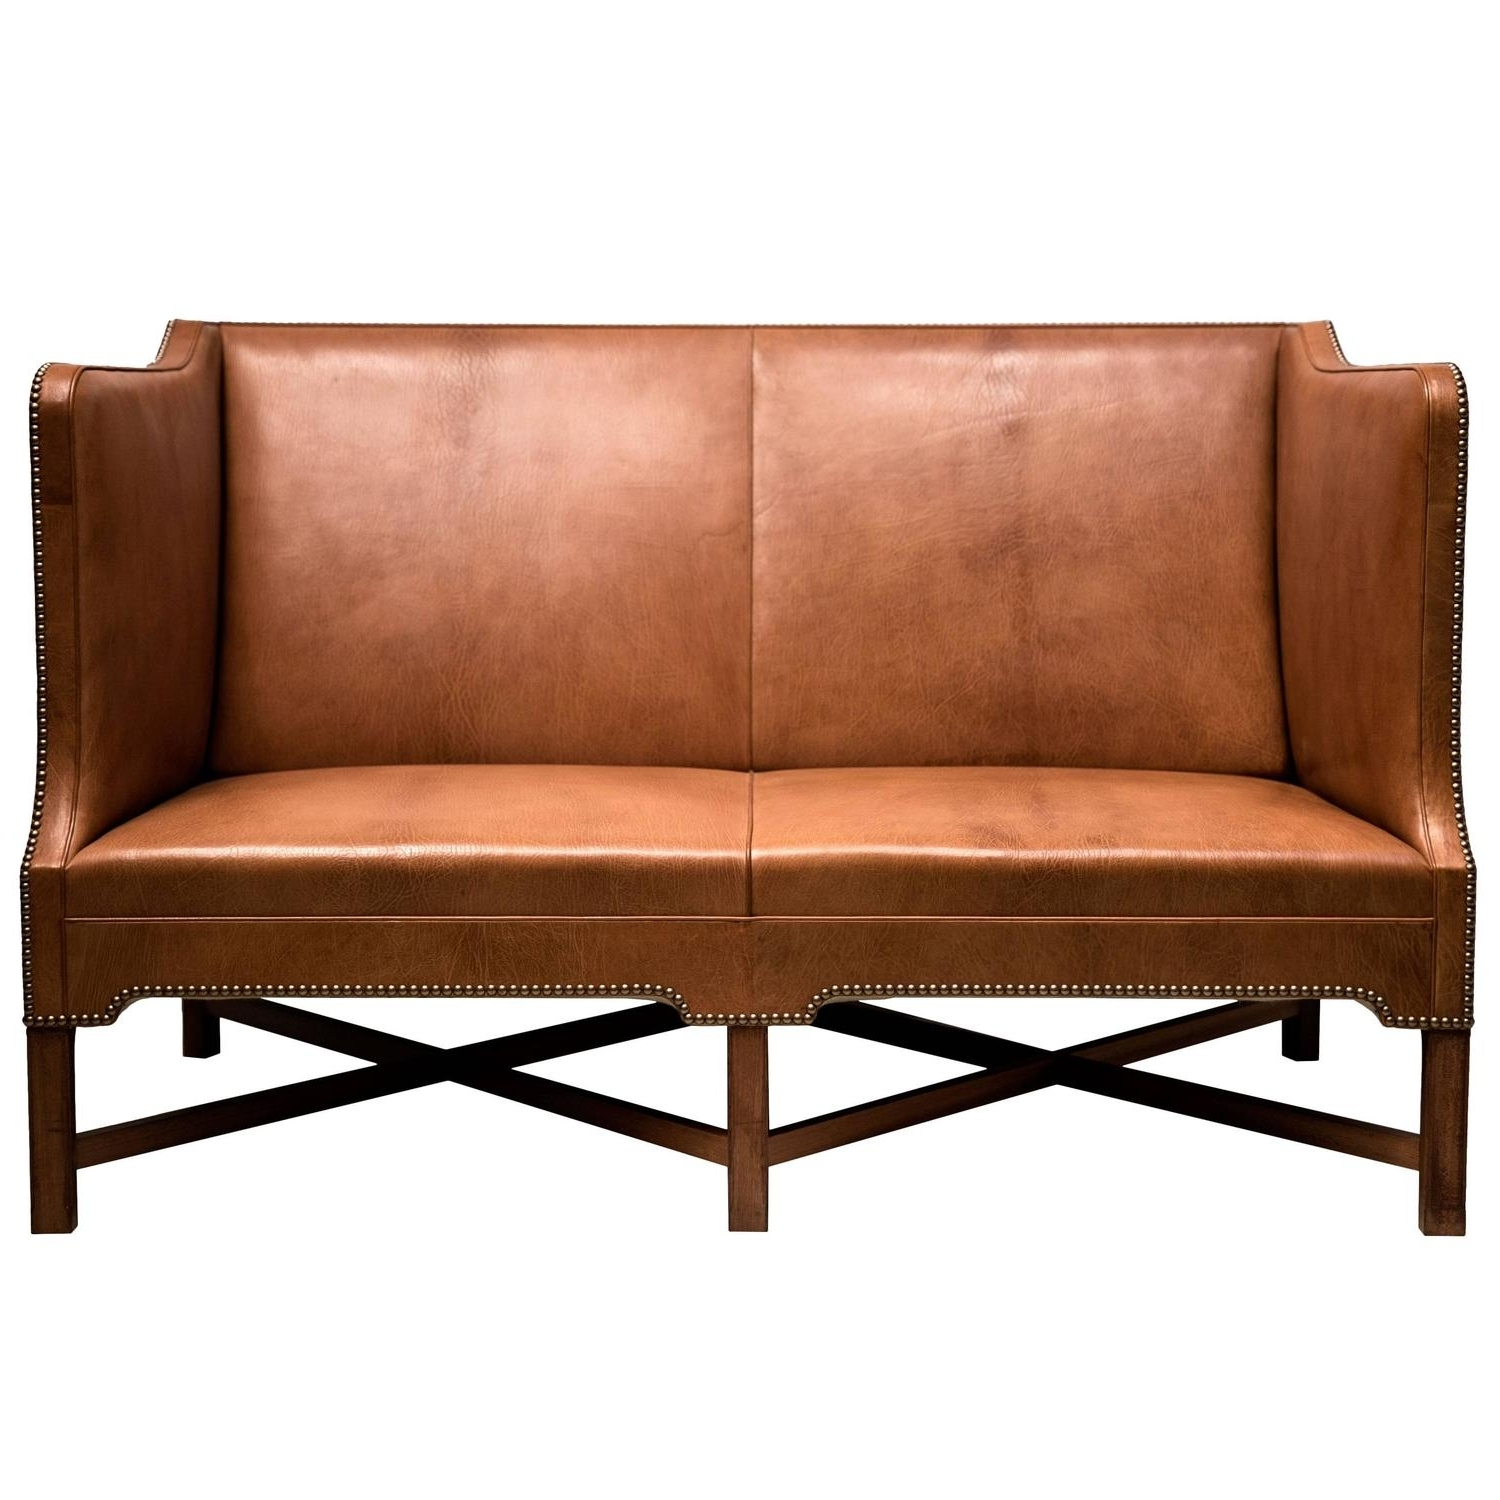 Most Popular 1930S Sofas – 122 For Sale At 1Stdibs With Regard To 1930S Sofas (View 13 of 20)